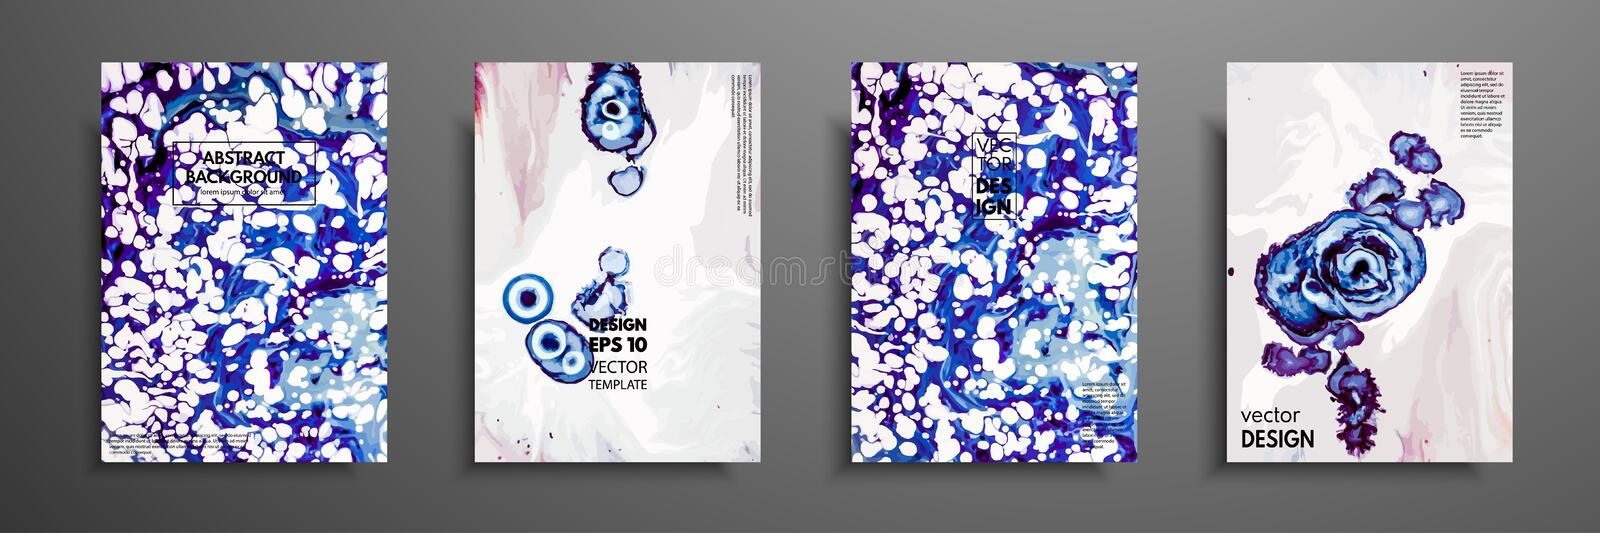 Mixture of acrylic paints. Design template with fluid art. Vector banner with colorful texture. Applicable for covers royalty free illustration